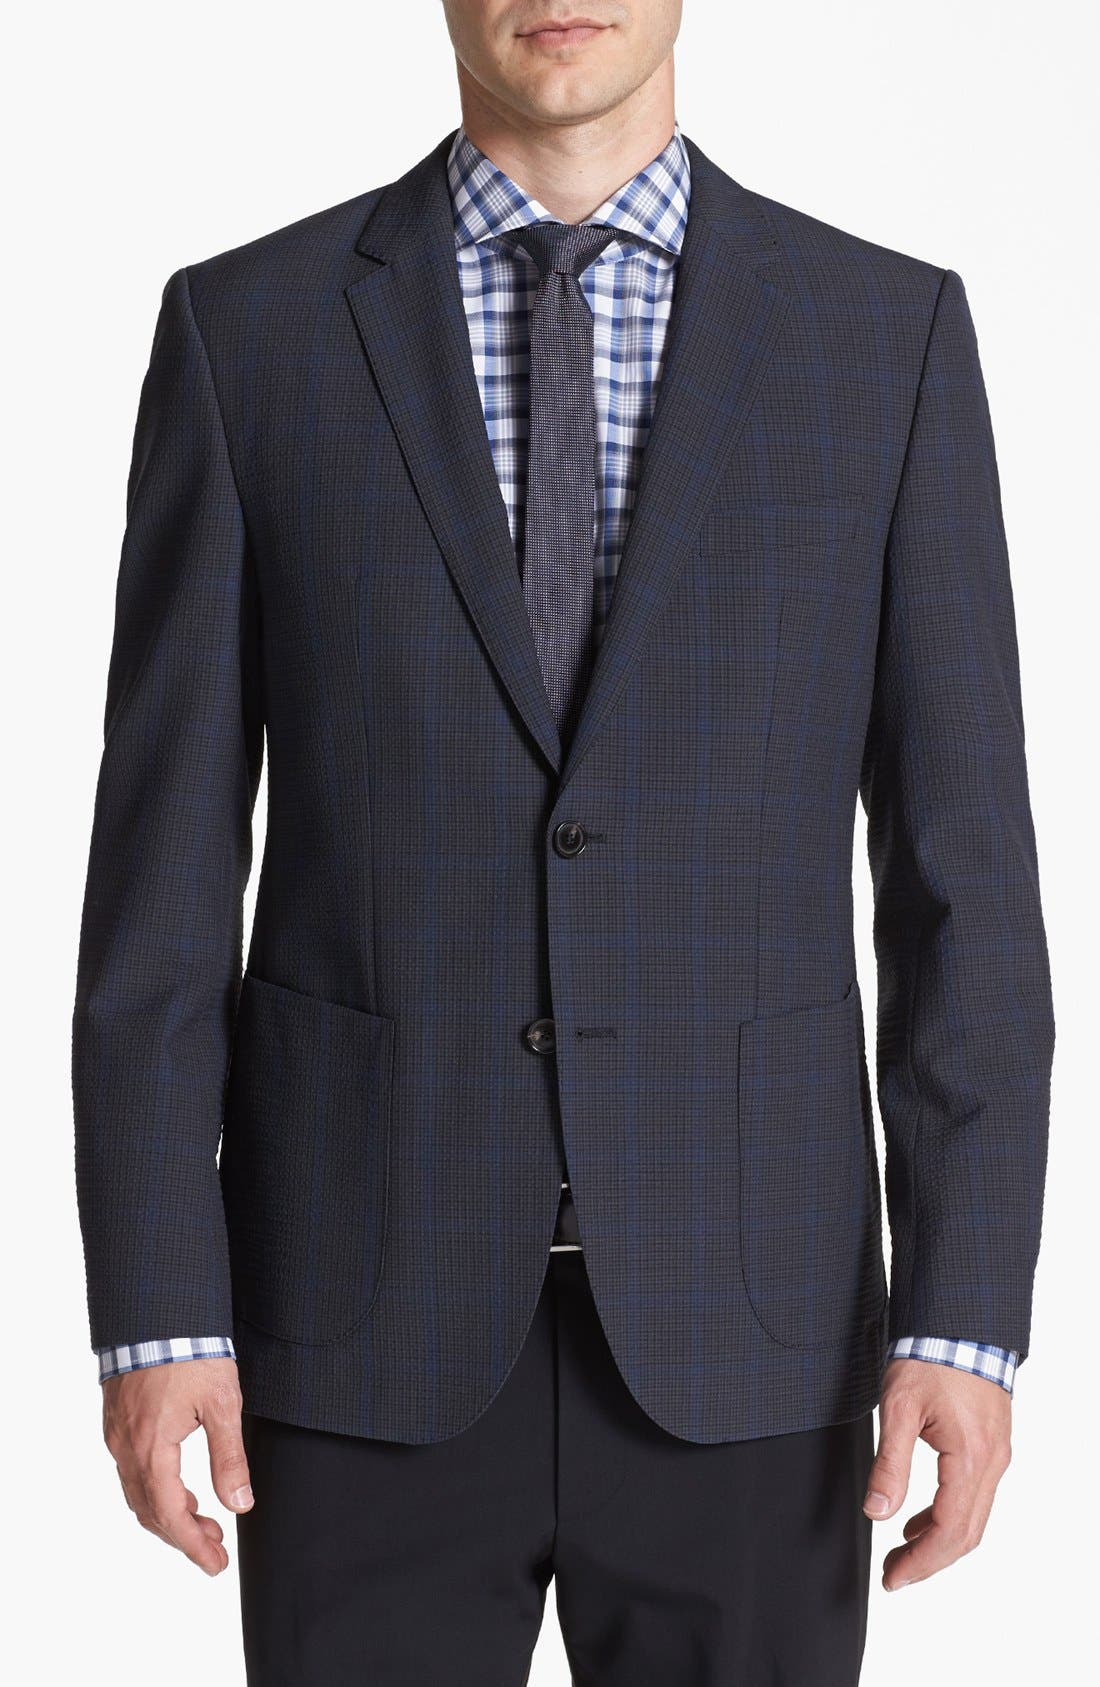 Alternate Image 1 Selected - BOSS HUGO BOSS 'Jesse' Trim Fit Plaid Sportcoat